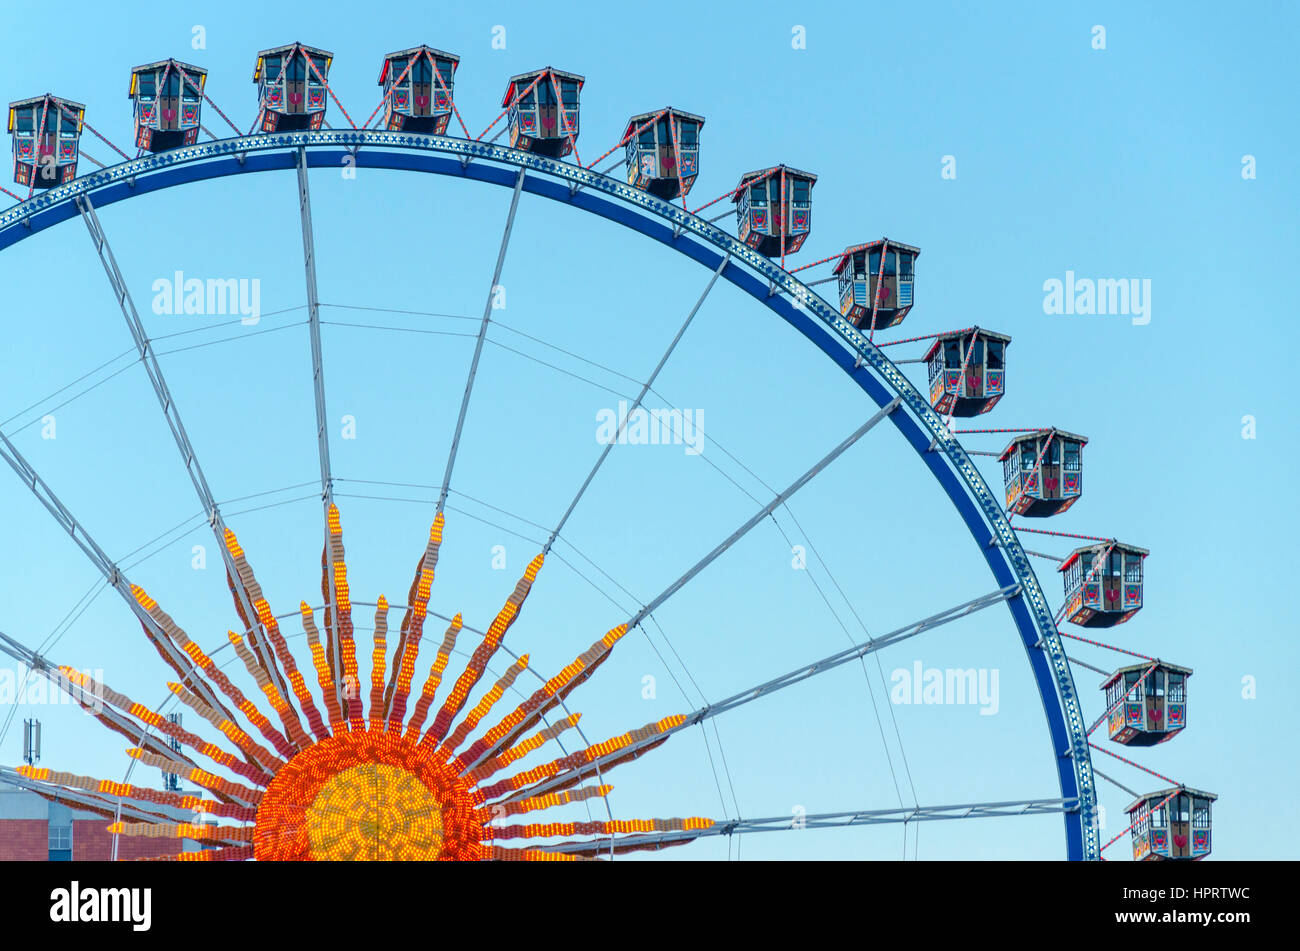 Ferris Wheel at Berliner Weihnachtszeit, German christmas market, Berlin, Germany - Stock Image